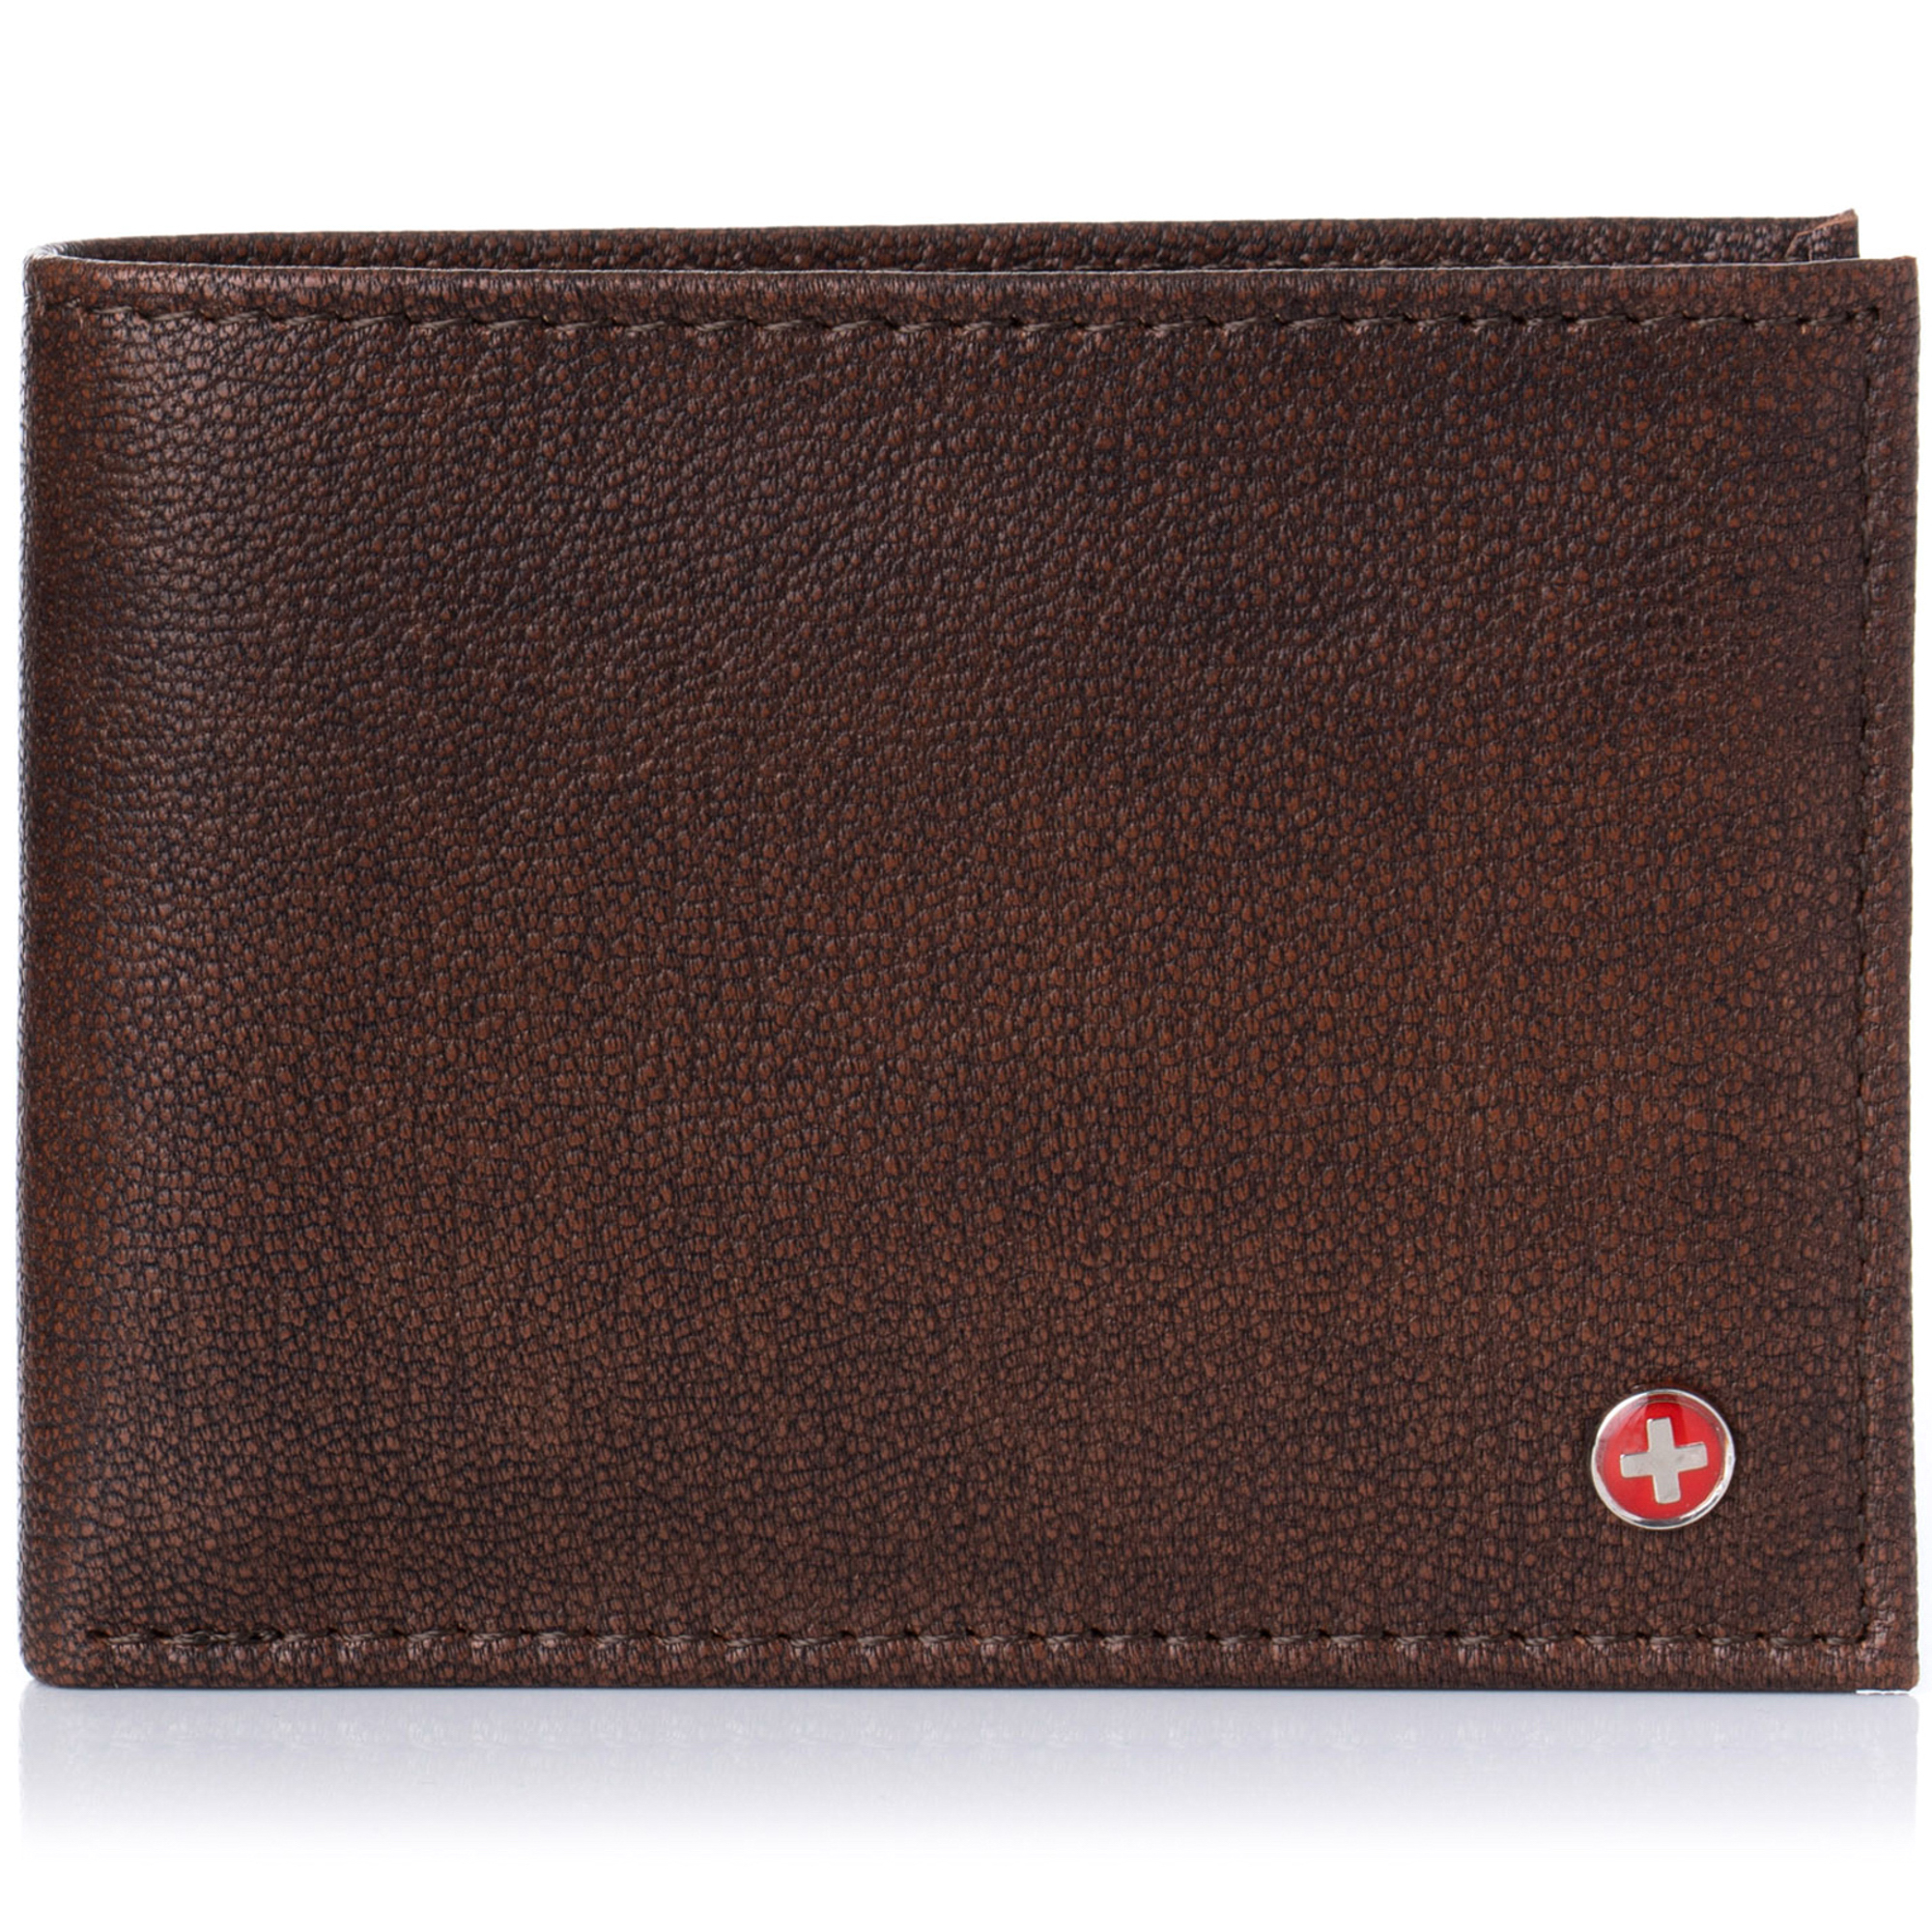 Alpine-Swiss-Mens-Wallet-Genuine-Leather-Removable-ID-Card-Case-Bifold-Passcase thumbnail 16